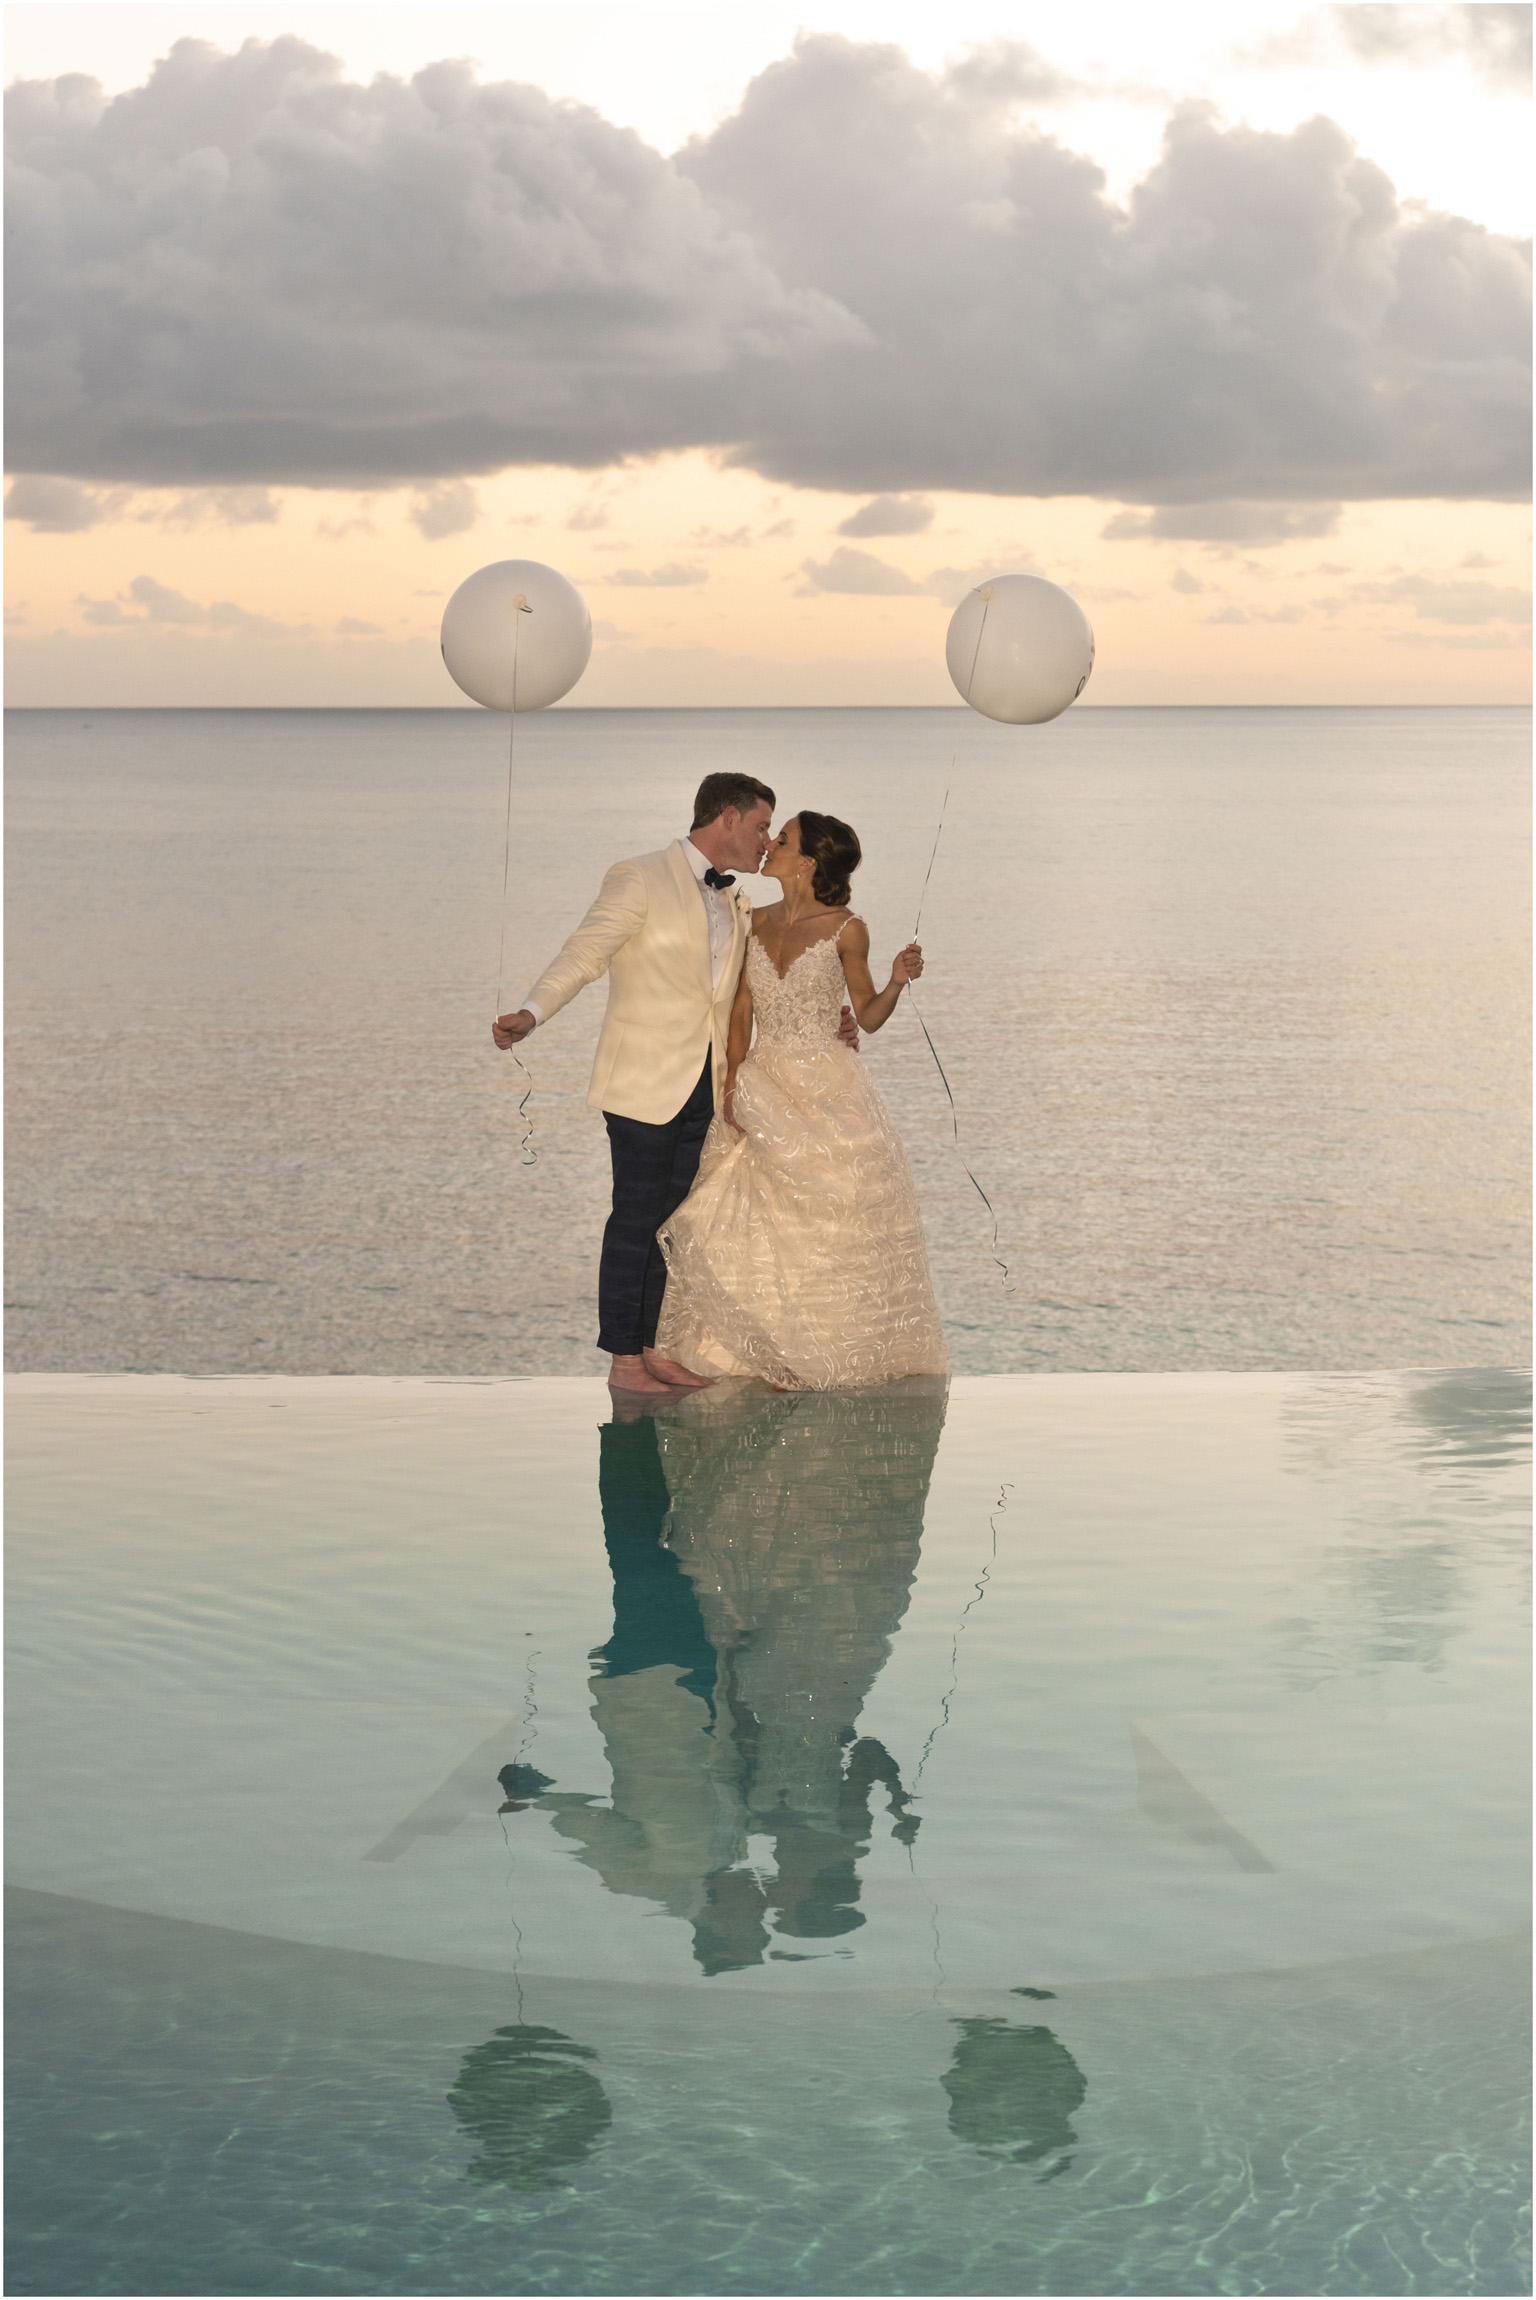 ©Fiander+Foto_Bermuda+Wedding+Photographer_The+Reefs_Taylor_Tedd_148.jpg